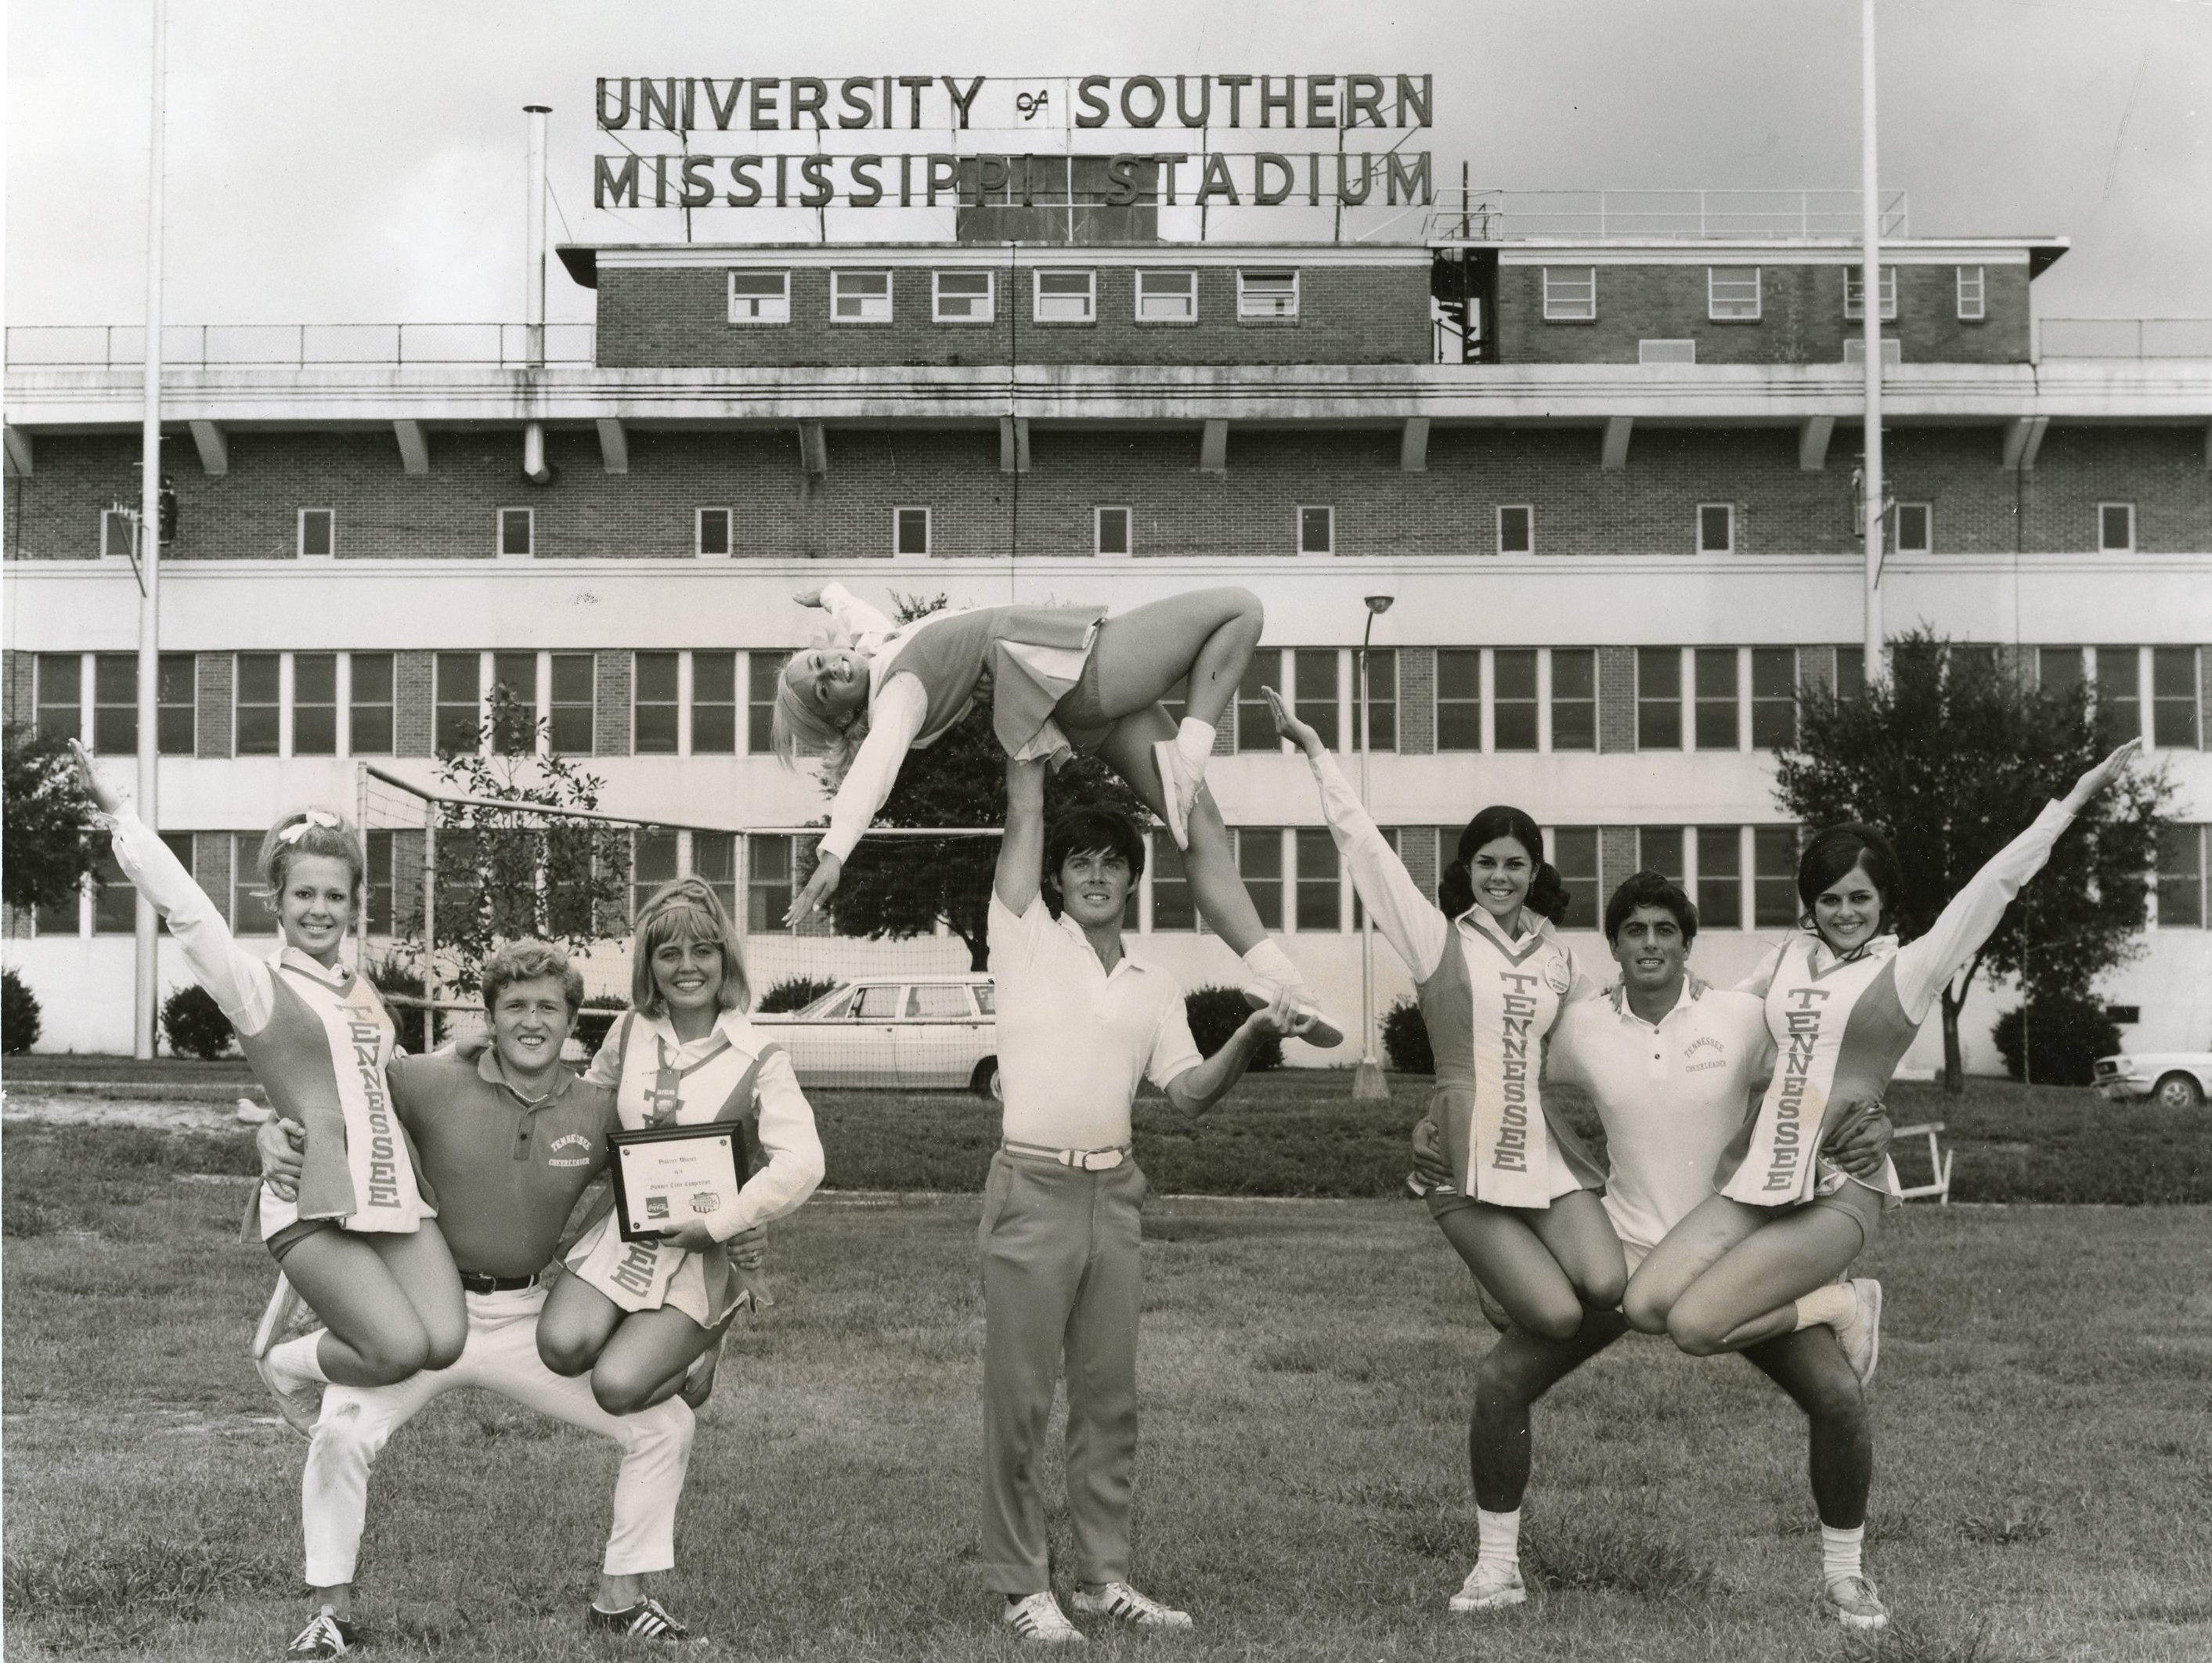 Picutred at the National Spirit and Sportsmanship workshop at University of Southern Mississippi in 1970 were Nancy Gritzner, Richard Gardner, head cheerleader Betsy Minnis, Pat Green (top), Mike Carpenter, Sharon Signaigo, Tony Rose and Lyn Eoff.